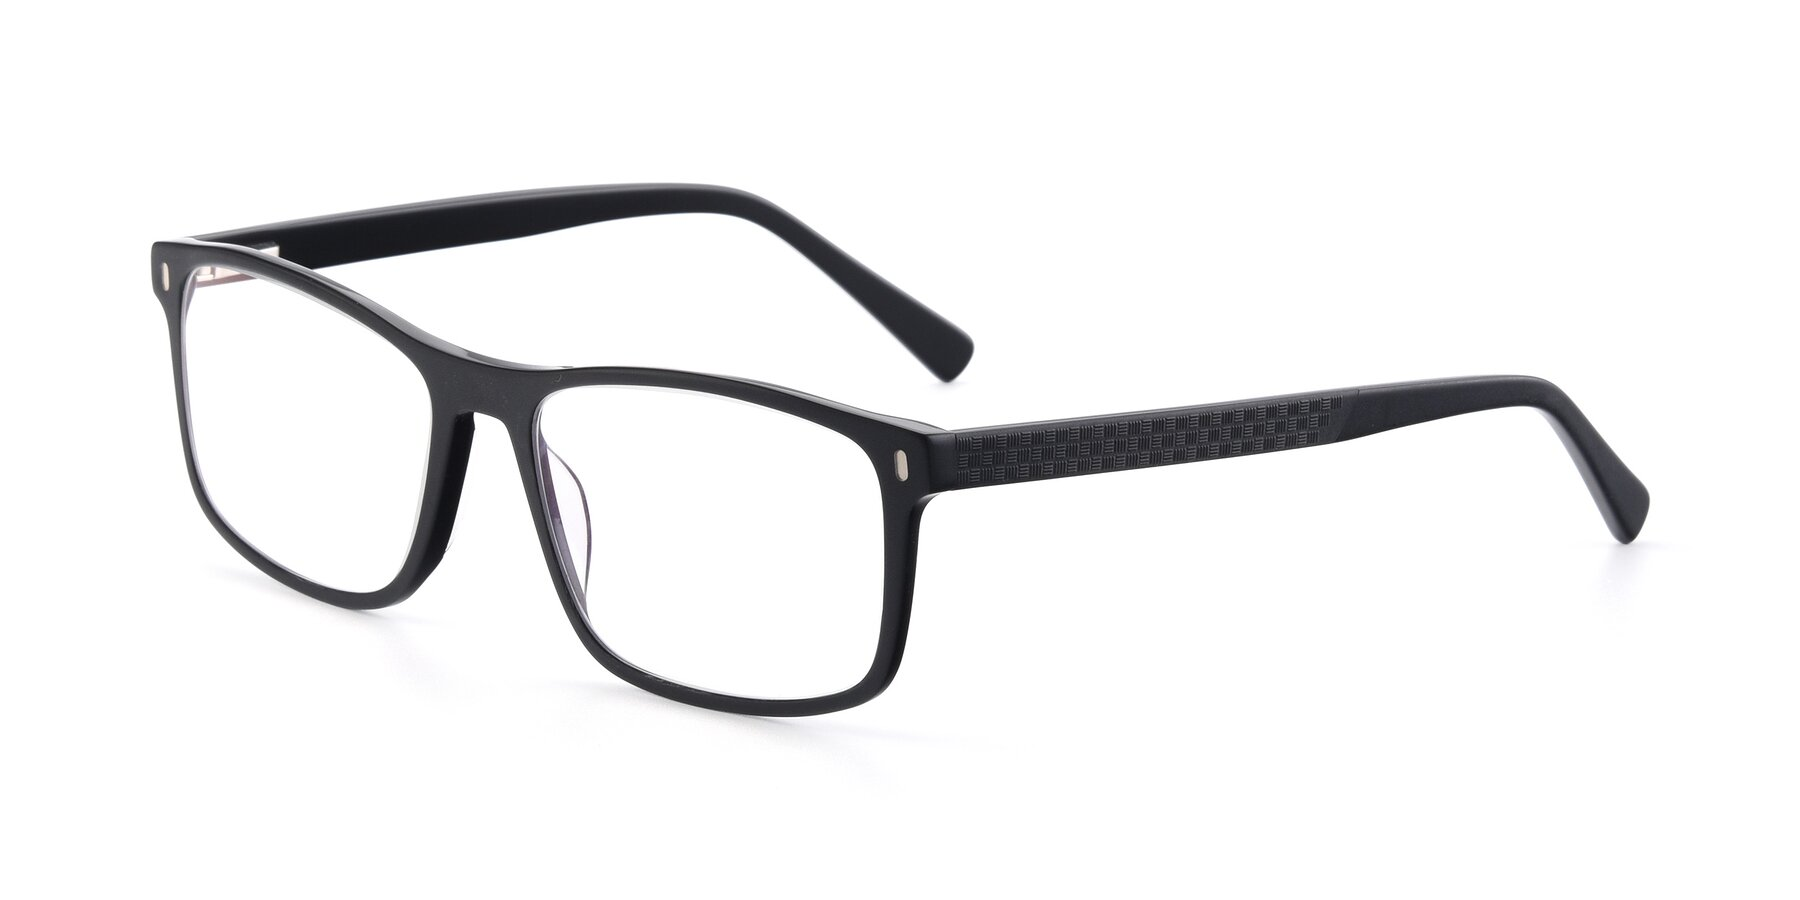 Angle of 17474 in Black with Clear Blue Light Blocking Lenses